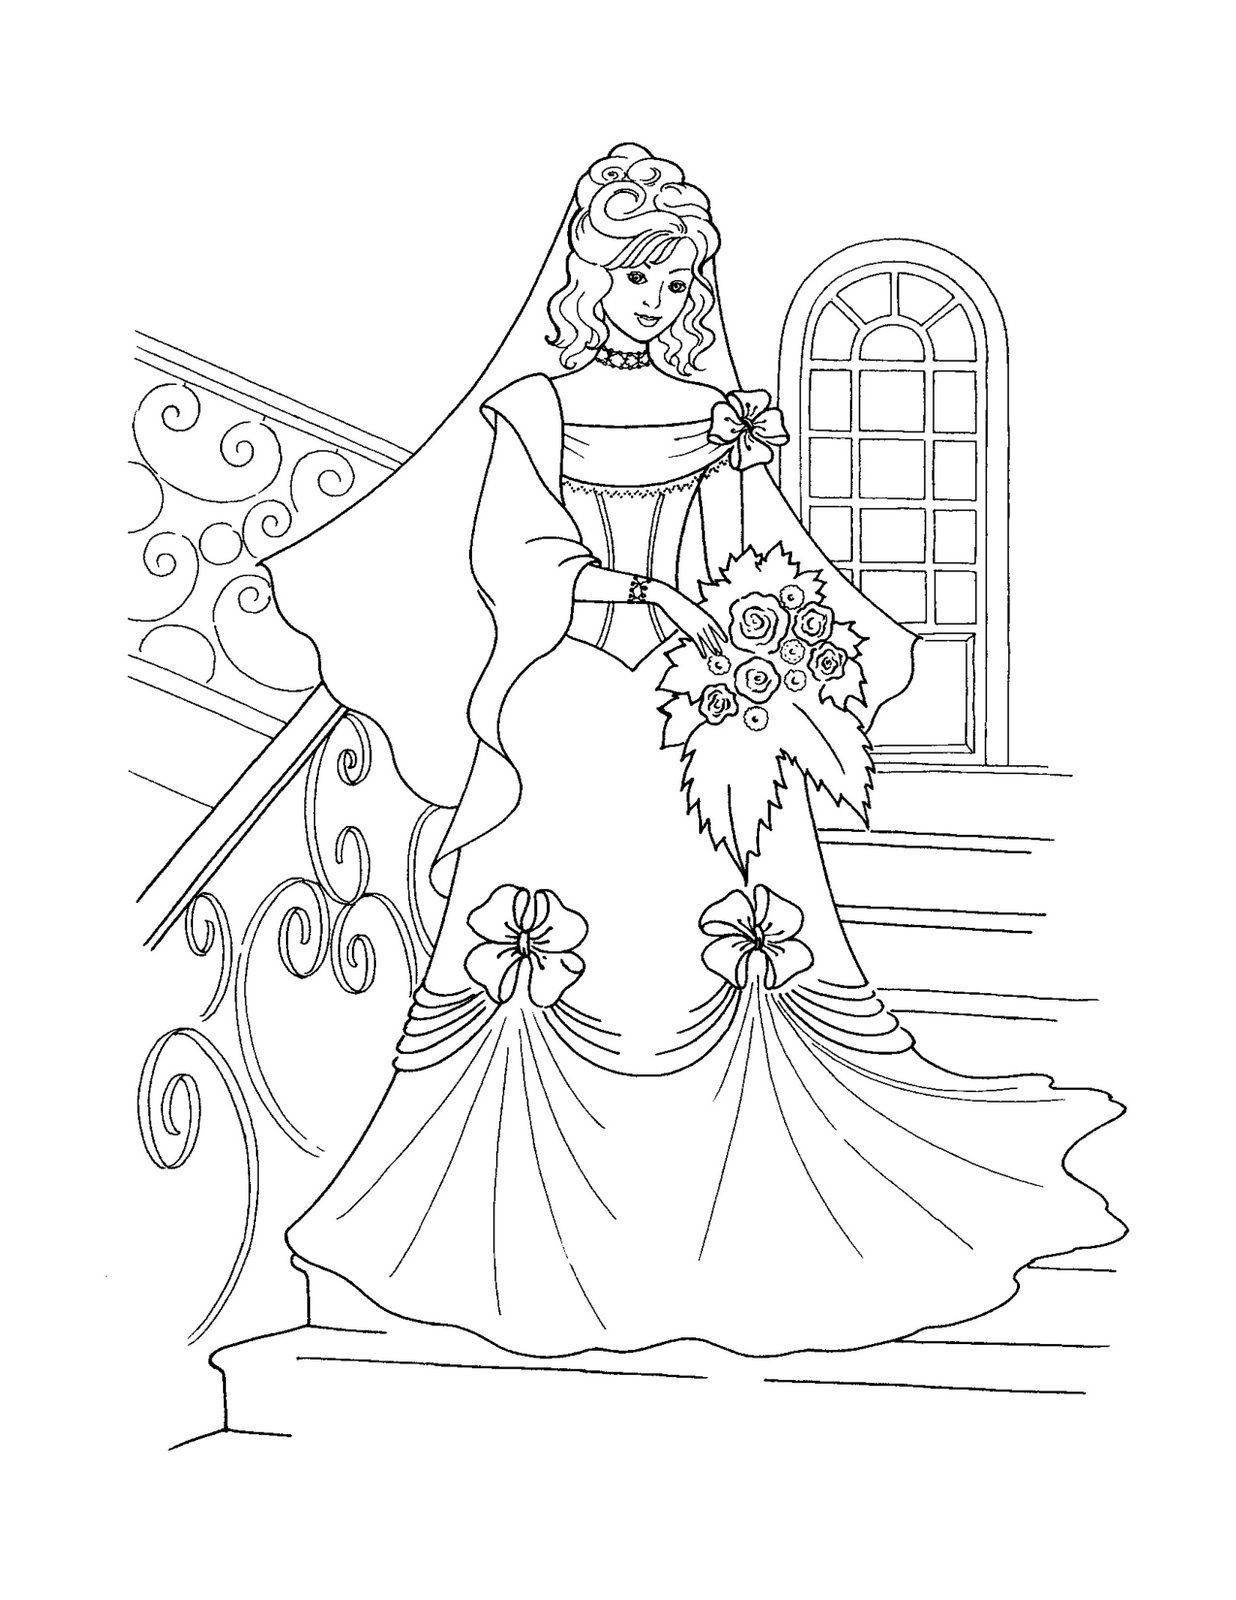 1236x1600 Amazing Pioneering Princess In A Castle Coloring Pages Blockify Co